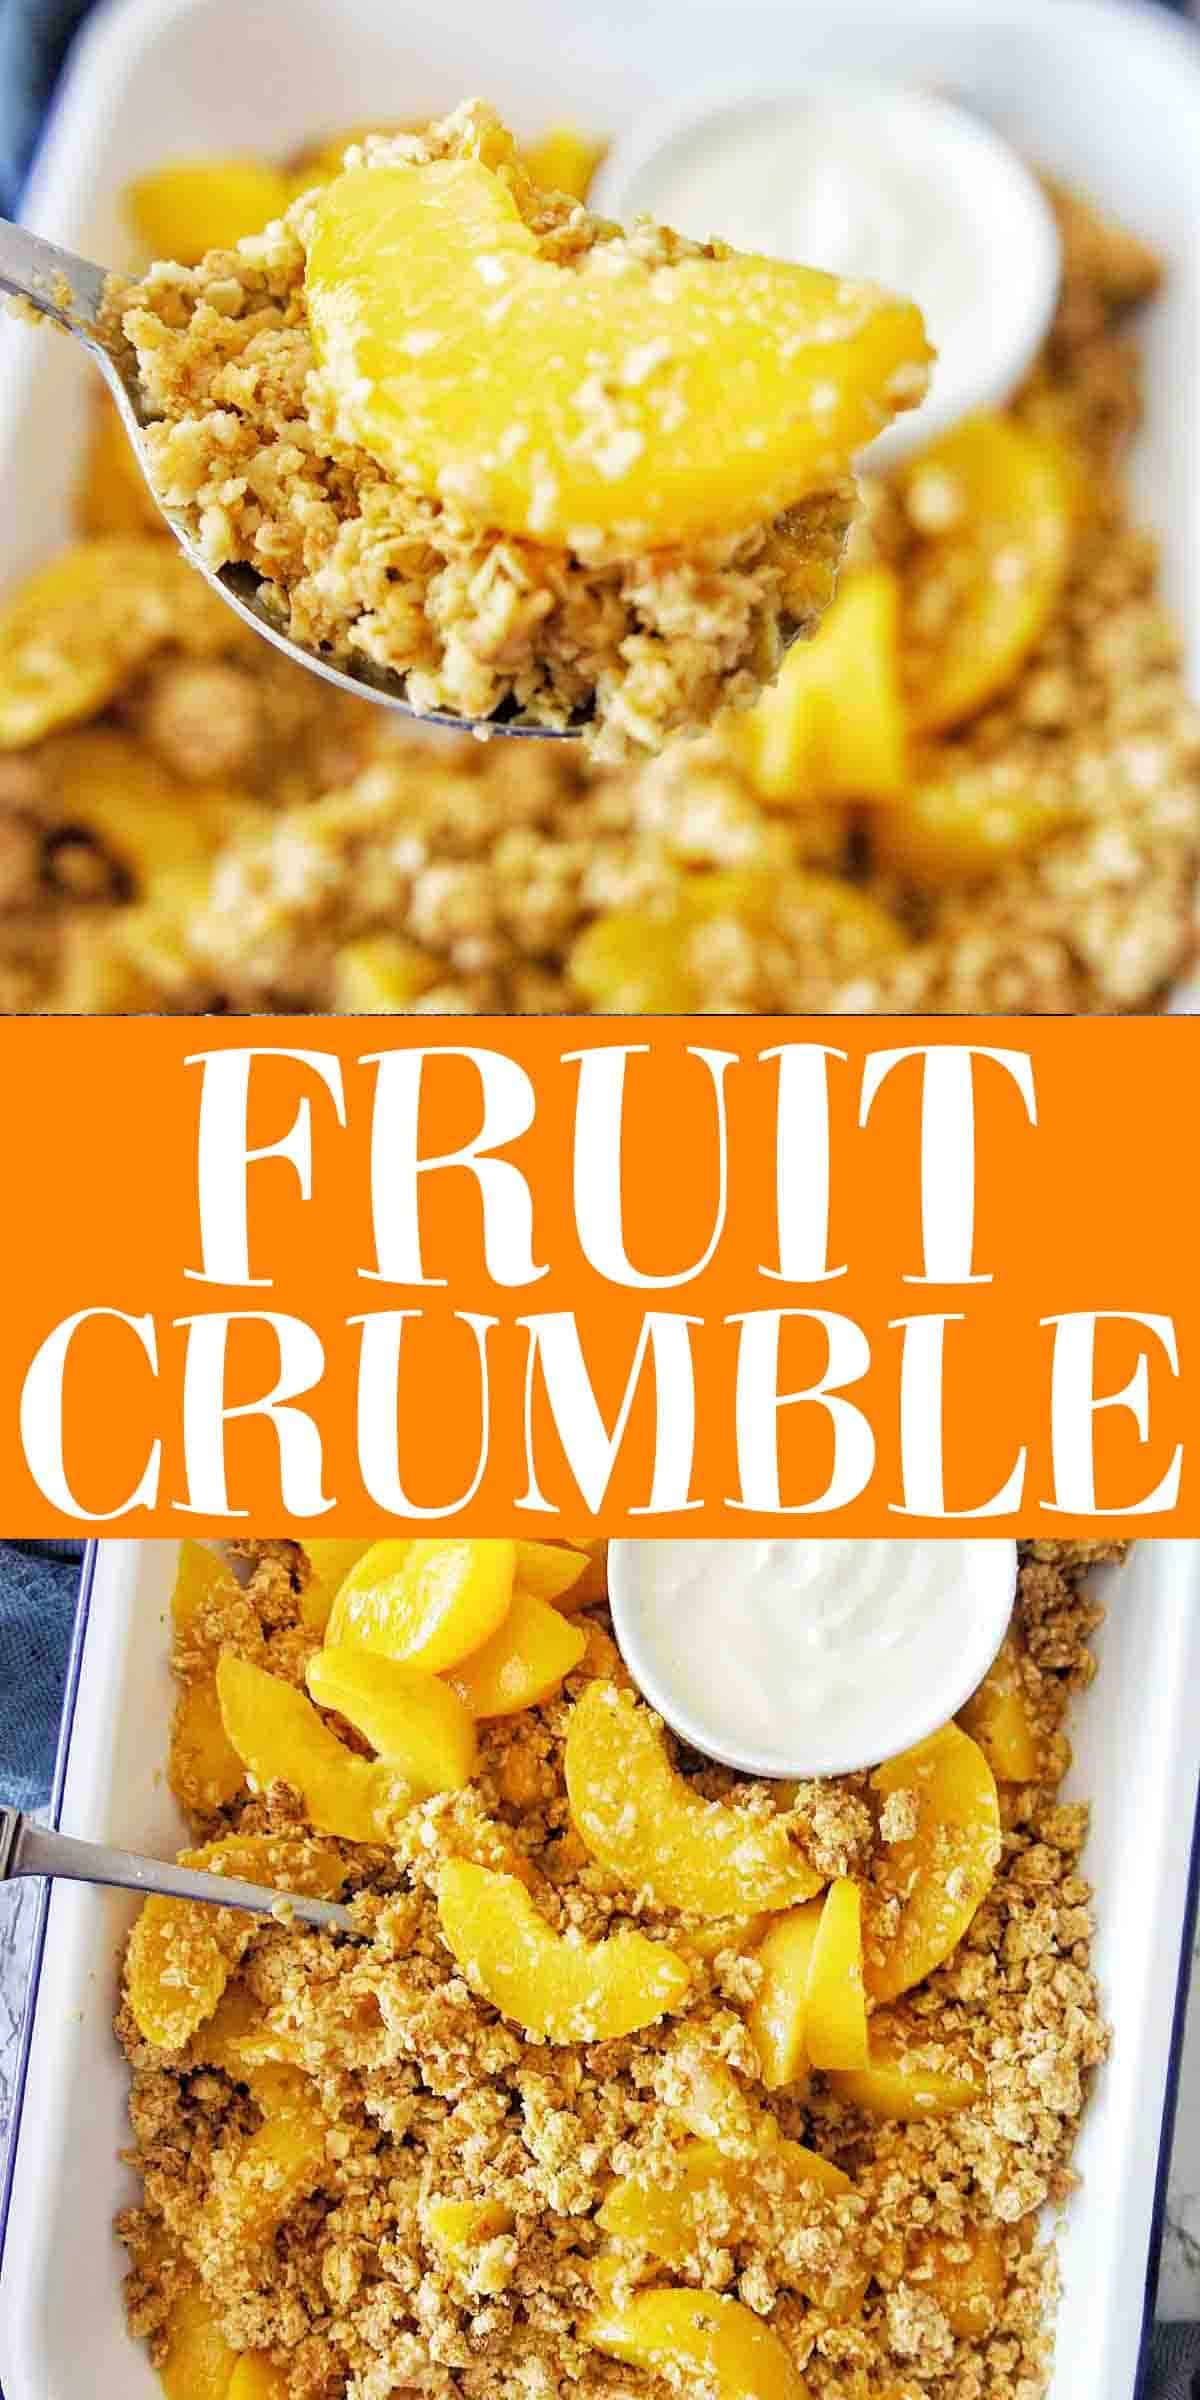 Fruit Crumble with text overlay